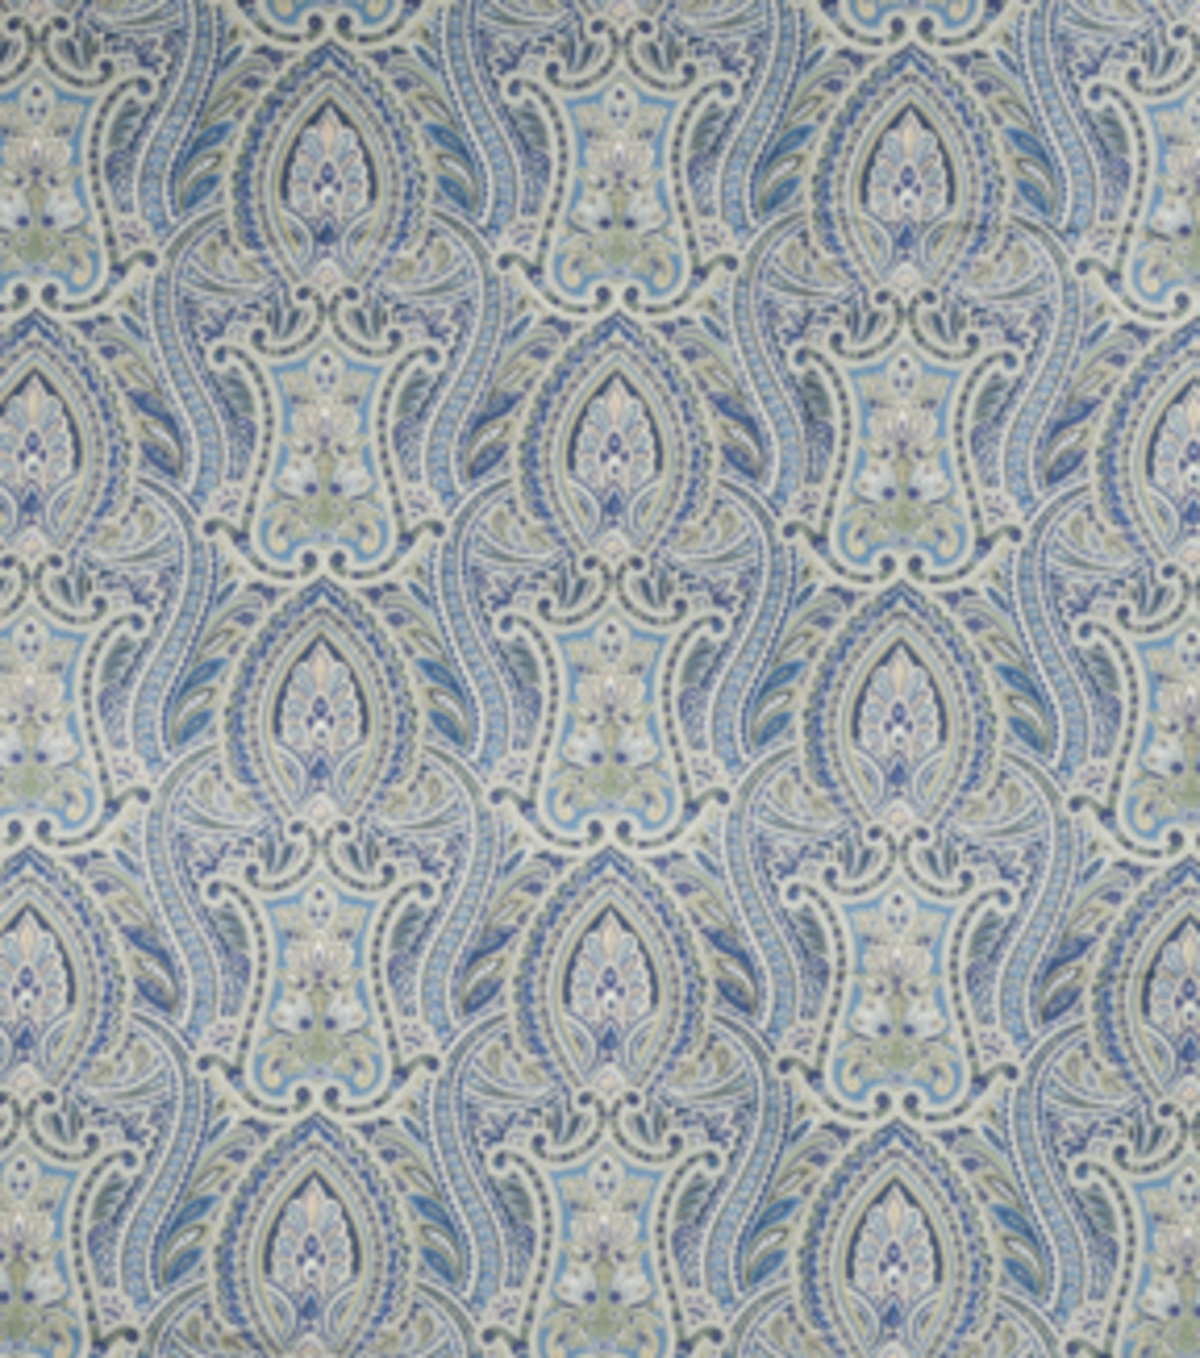 Home Decor 8\u0022x8\u0022 Fabric Swatch-Upholstery Fabric SMC Designs Cache Lapis